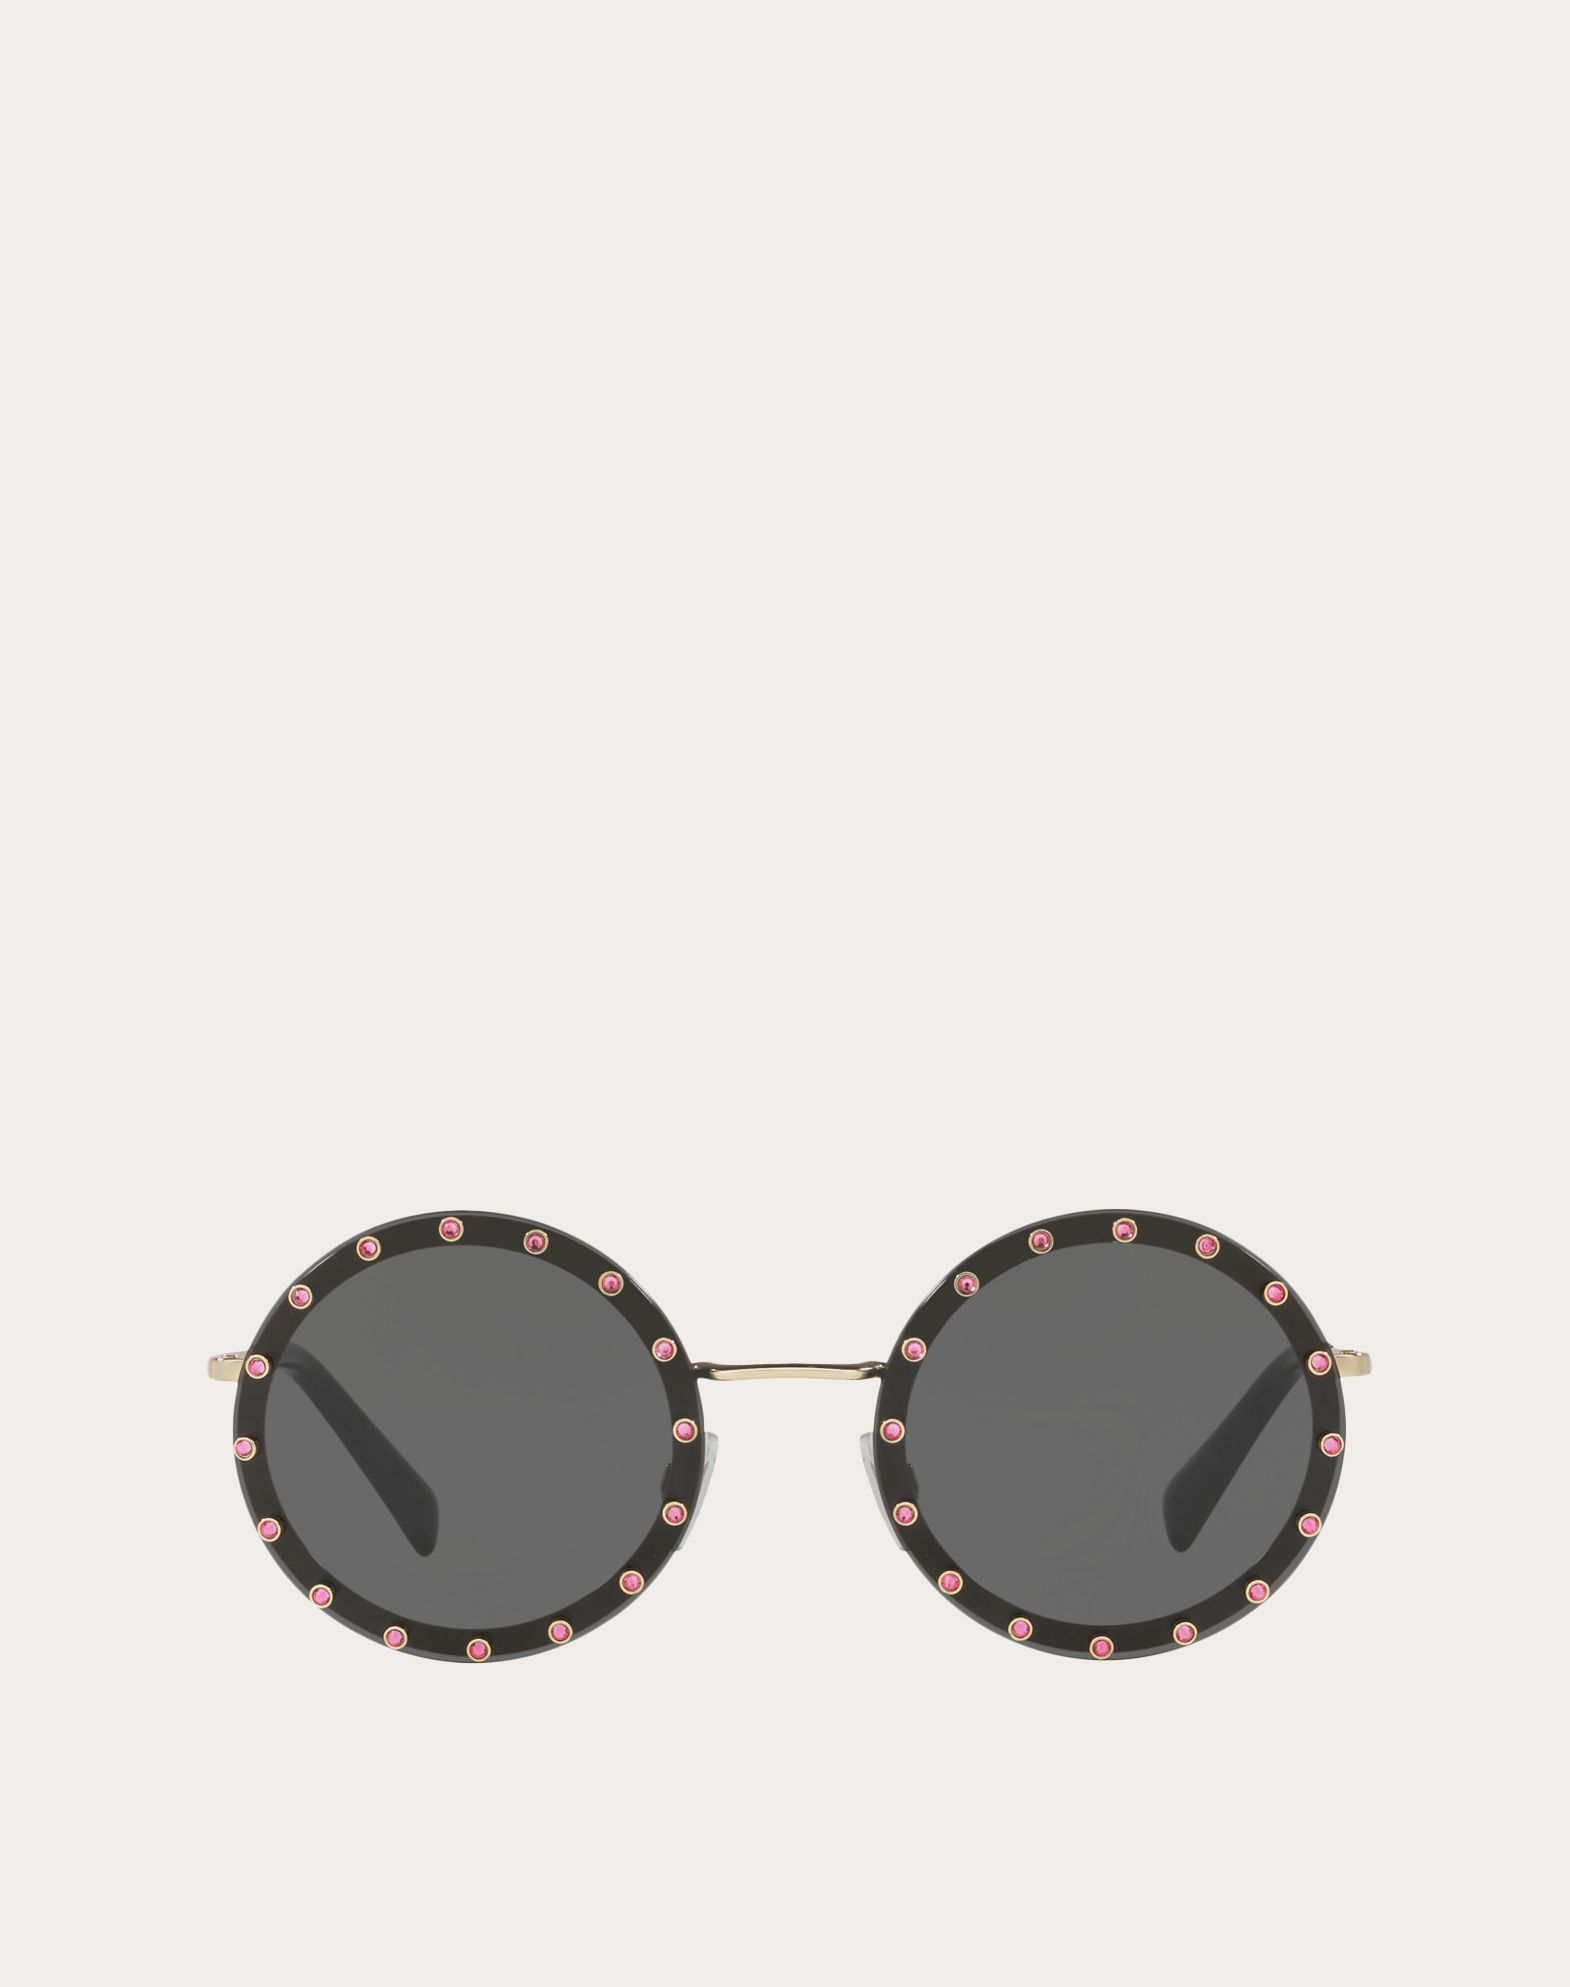 CRYSTAL STUDDED ROUND FRAME METAL SUNGLASSES